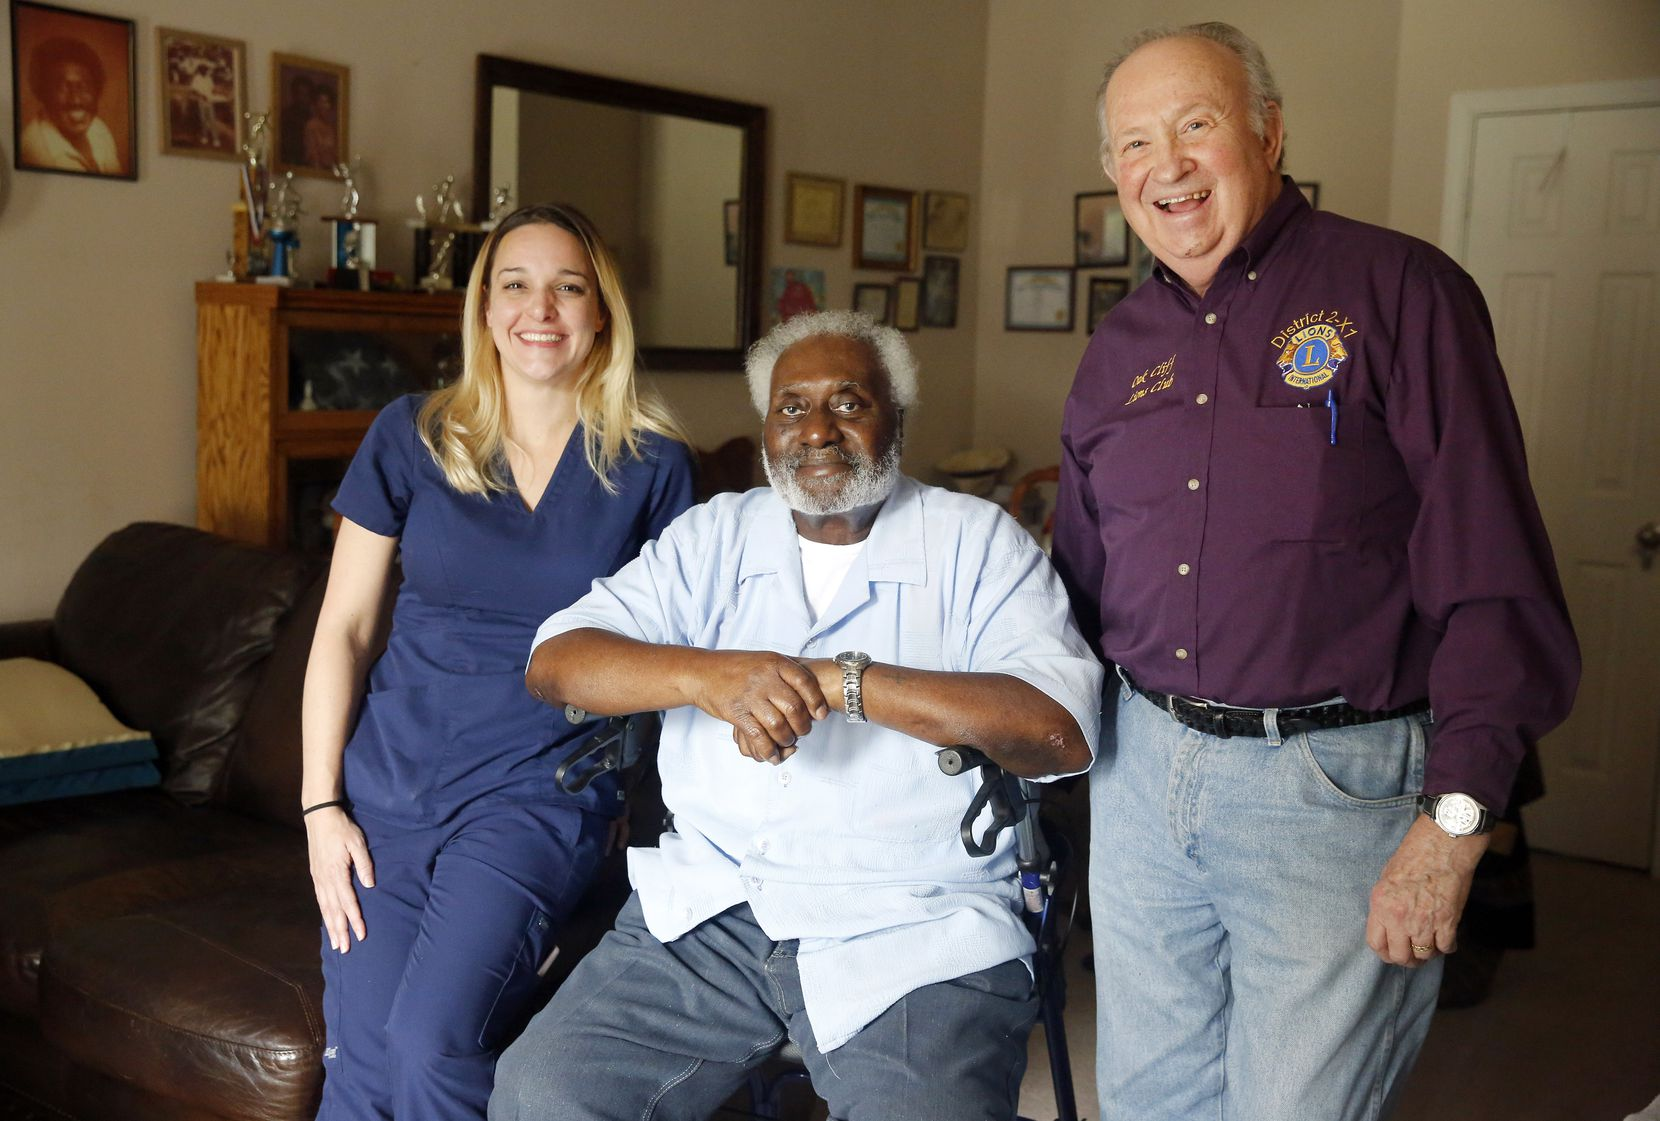 Meals on Wheels recipient George Kelley, 74, along with Abby Tupper and her father, Charlie, recalled the events of Dec. 17, when the Tuppers' insistence on getting Kelley his lunch led to his rescue from a fall that left him stranded on the floor of his apartment.